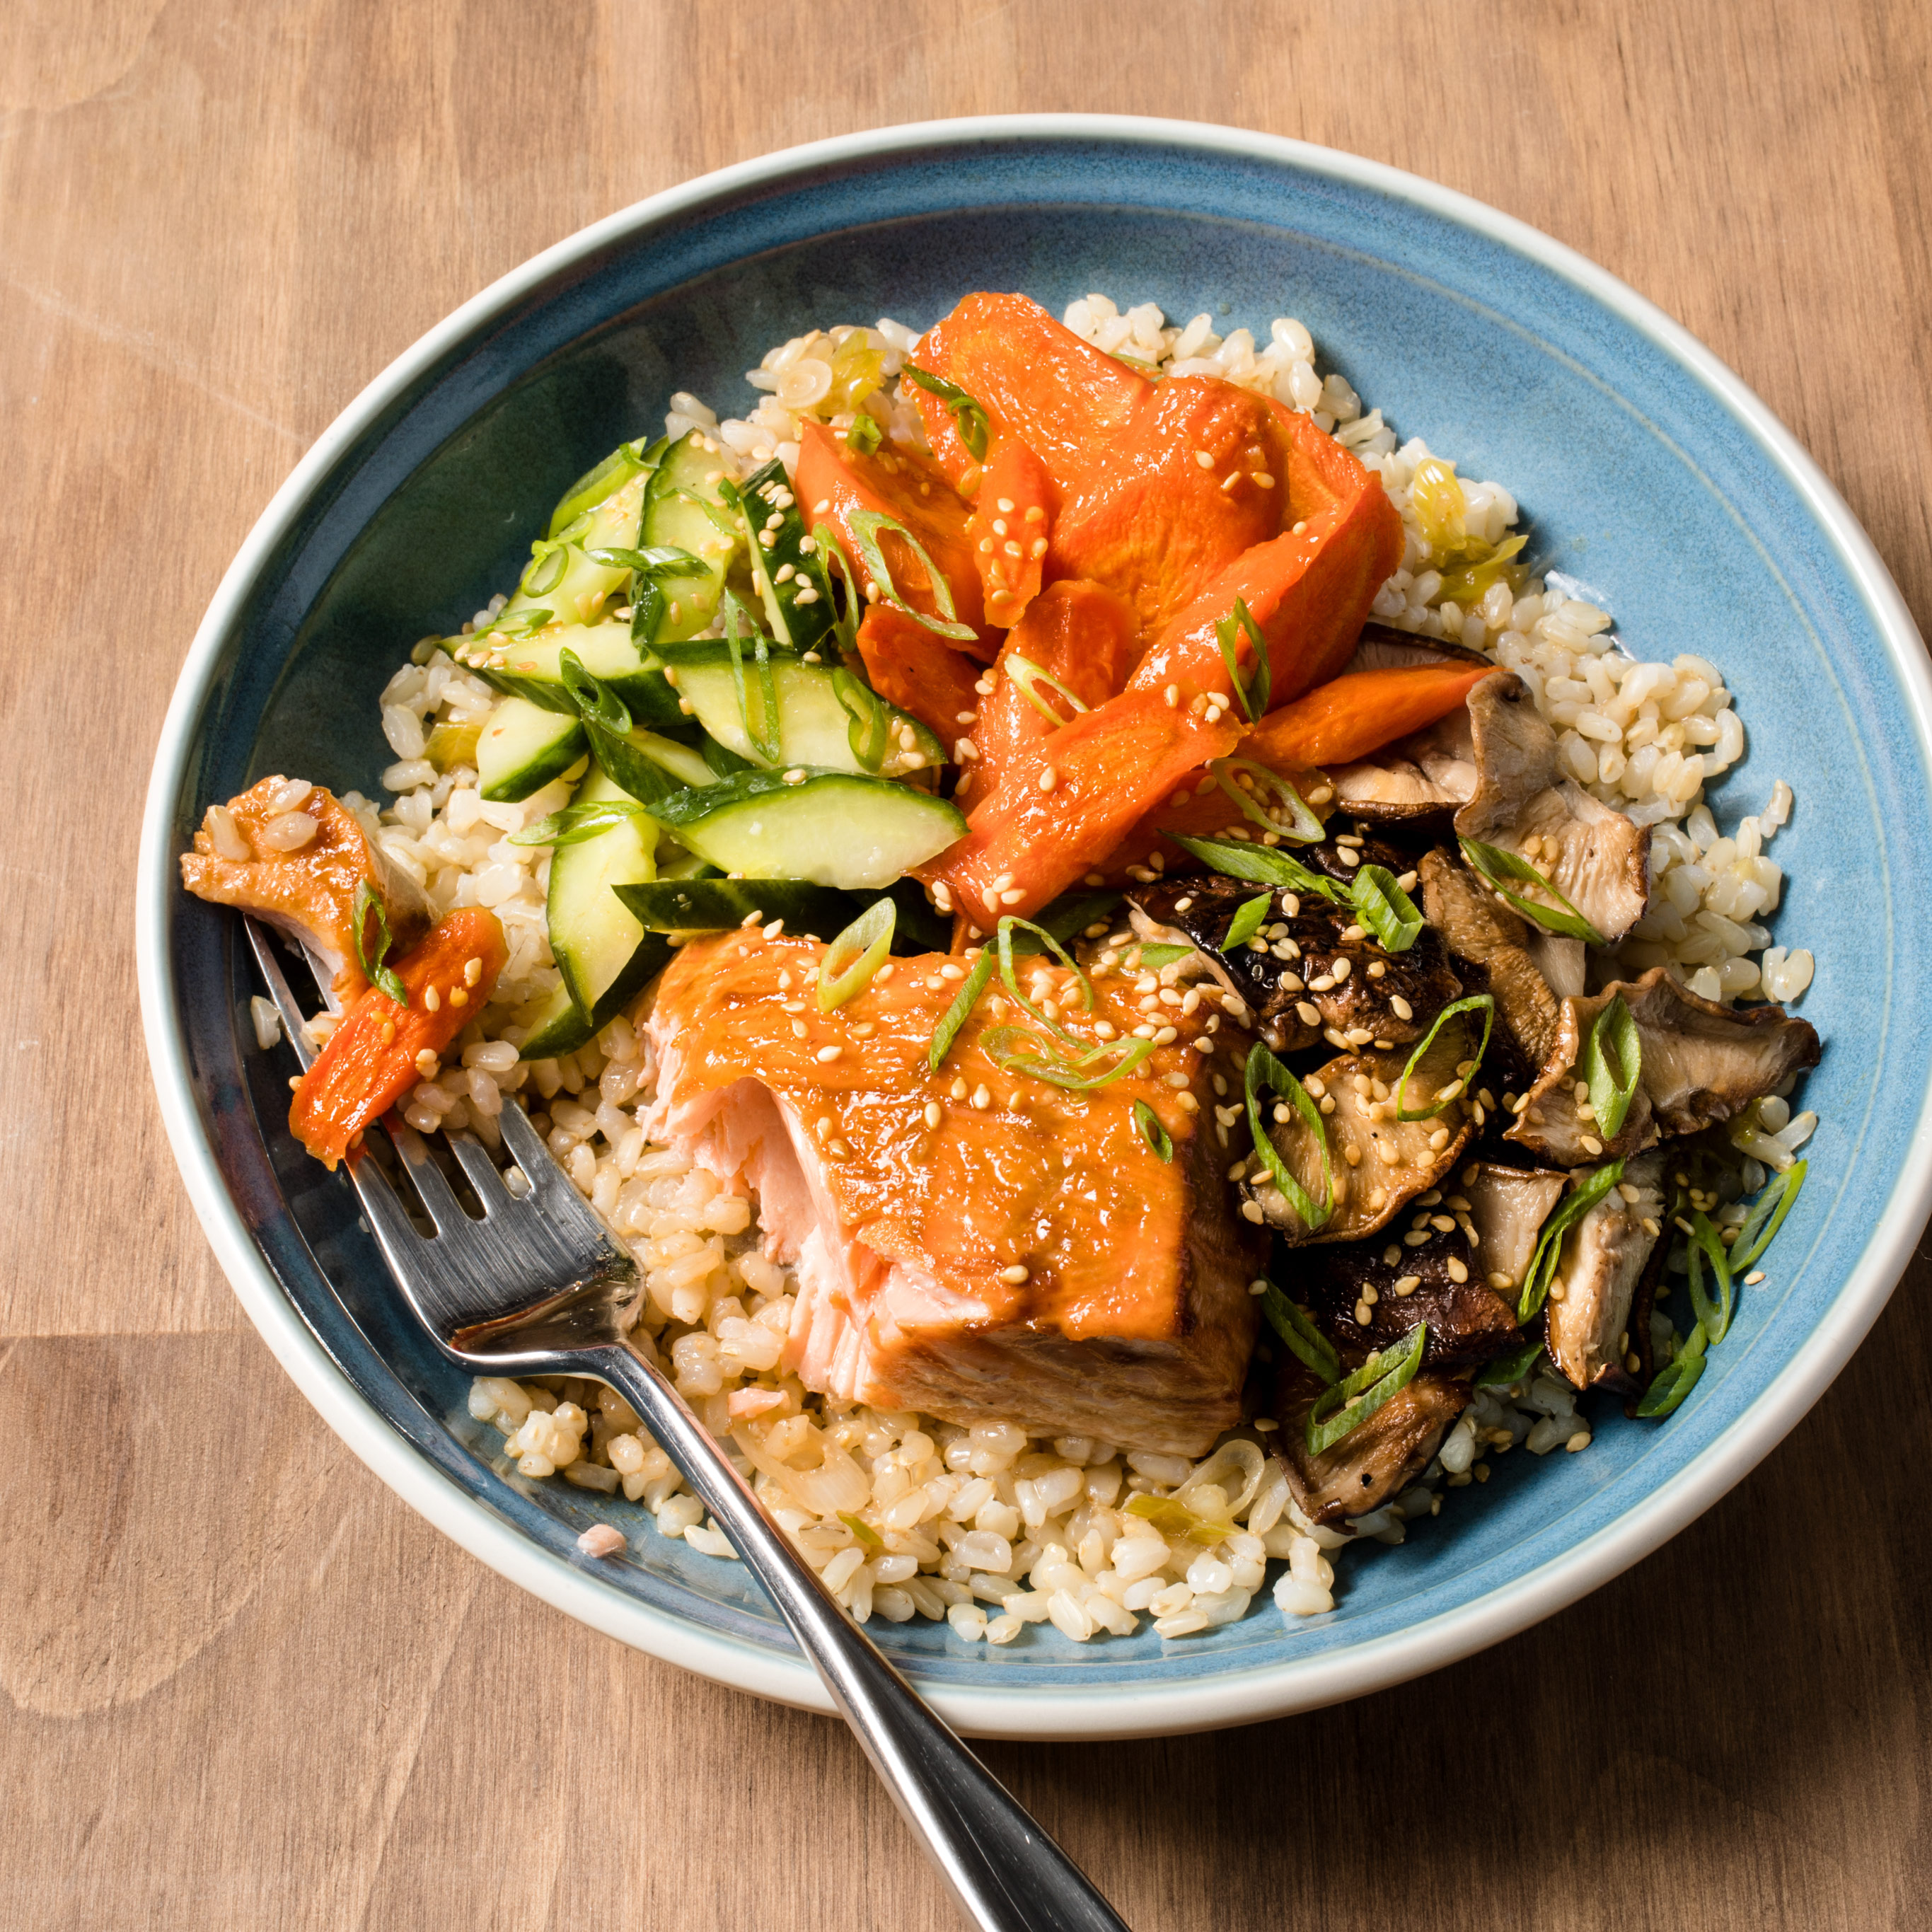 cbbe305955f3 Brown Rice Bowl with Vegetables and Salmon